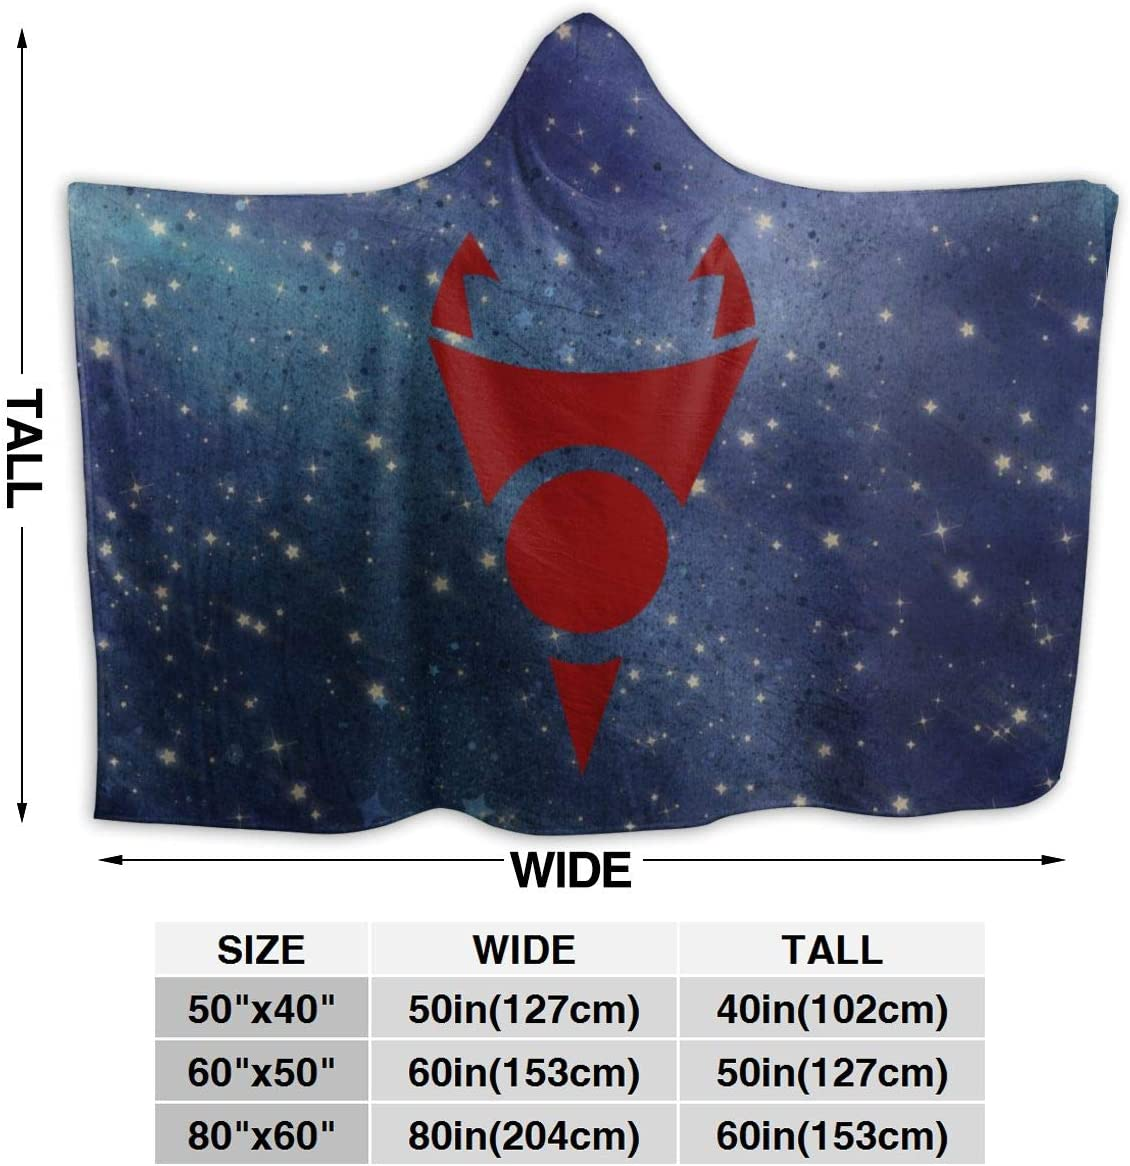 Andea Classic Invader Zim Gir Hooded Blanket Warm Wearable Novelty Cape for Kids Adults 50x40 Inch